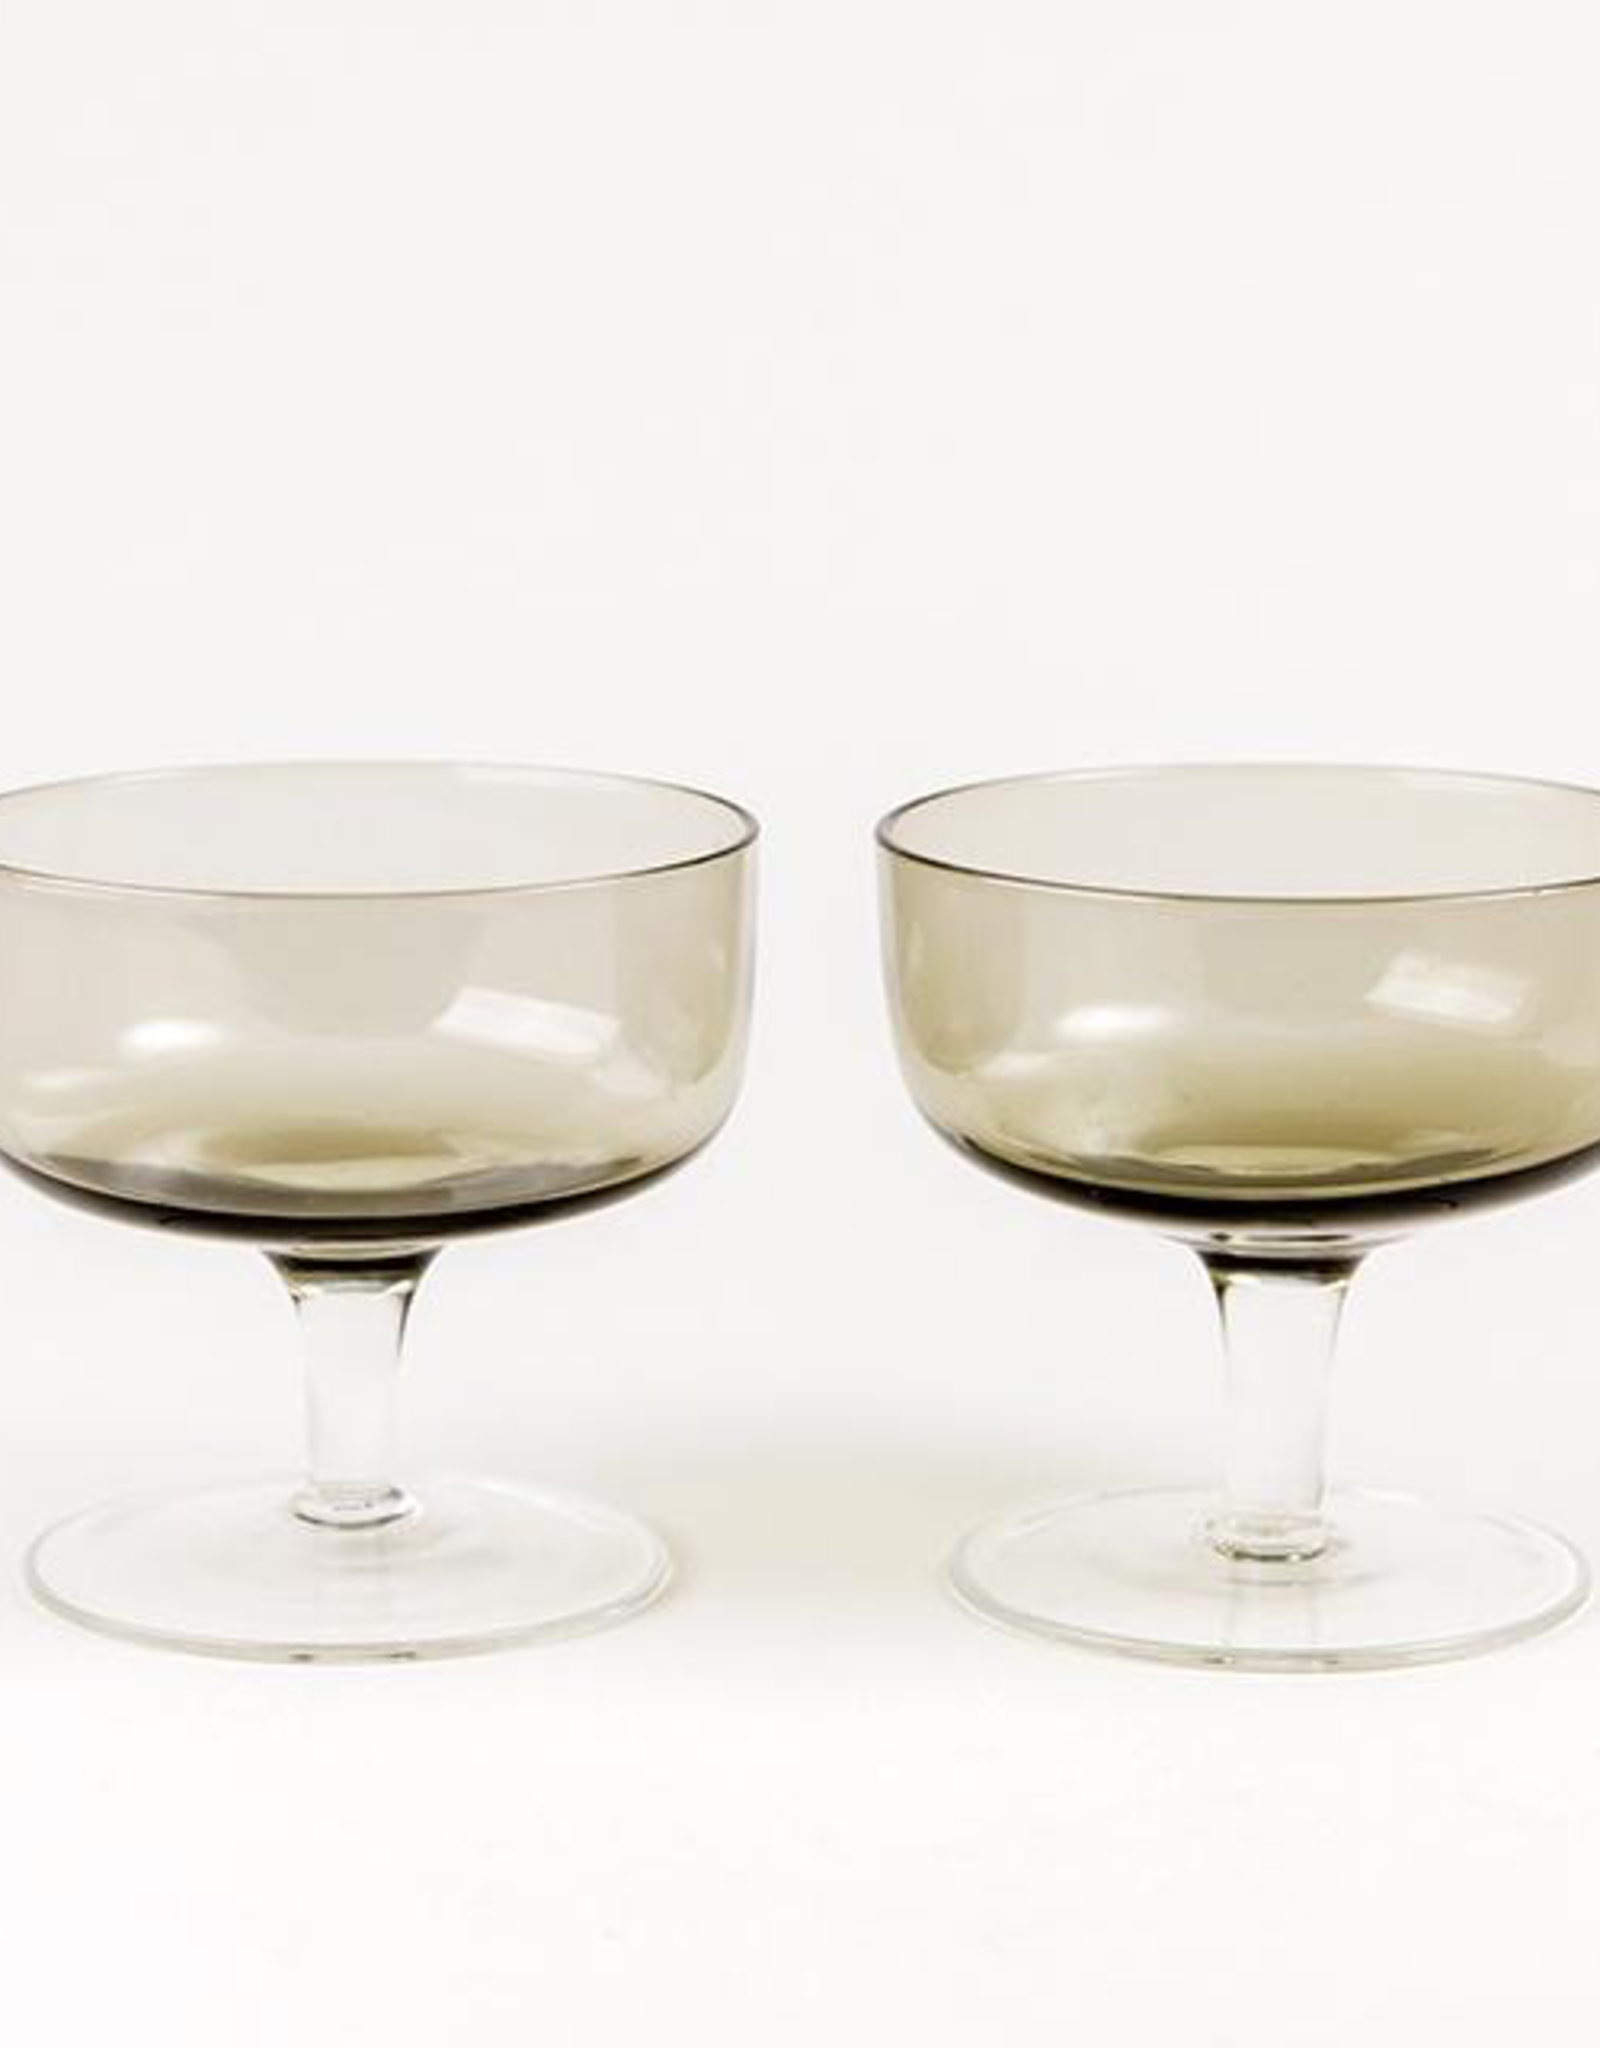 Coupes, Fonce Dessert Bowls on Stand